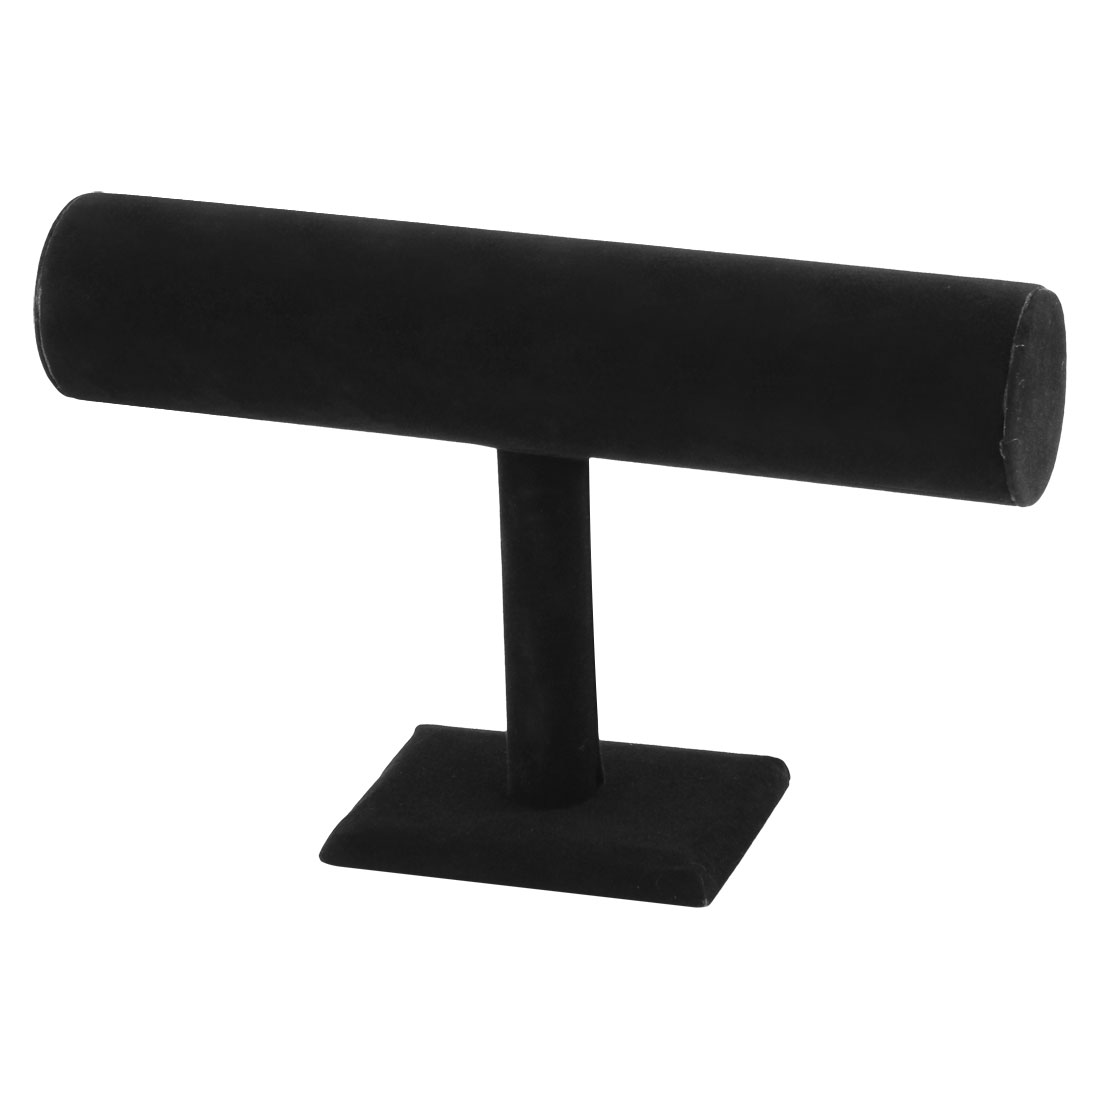 Velvet T-Bar Display Necklace Jewelry Watch Bangle Bracelet Organizer Stand Holder Black